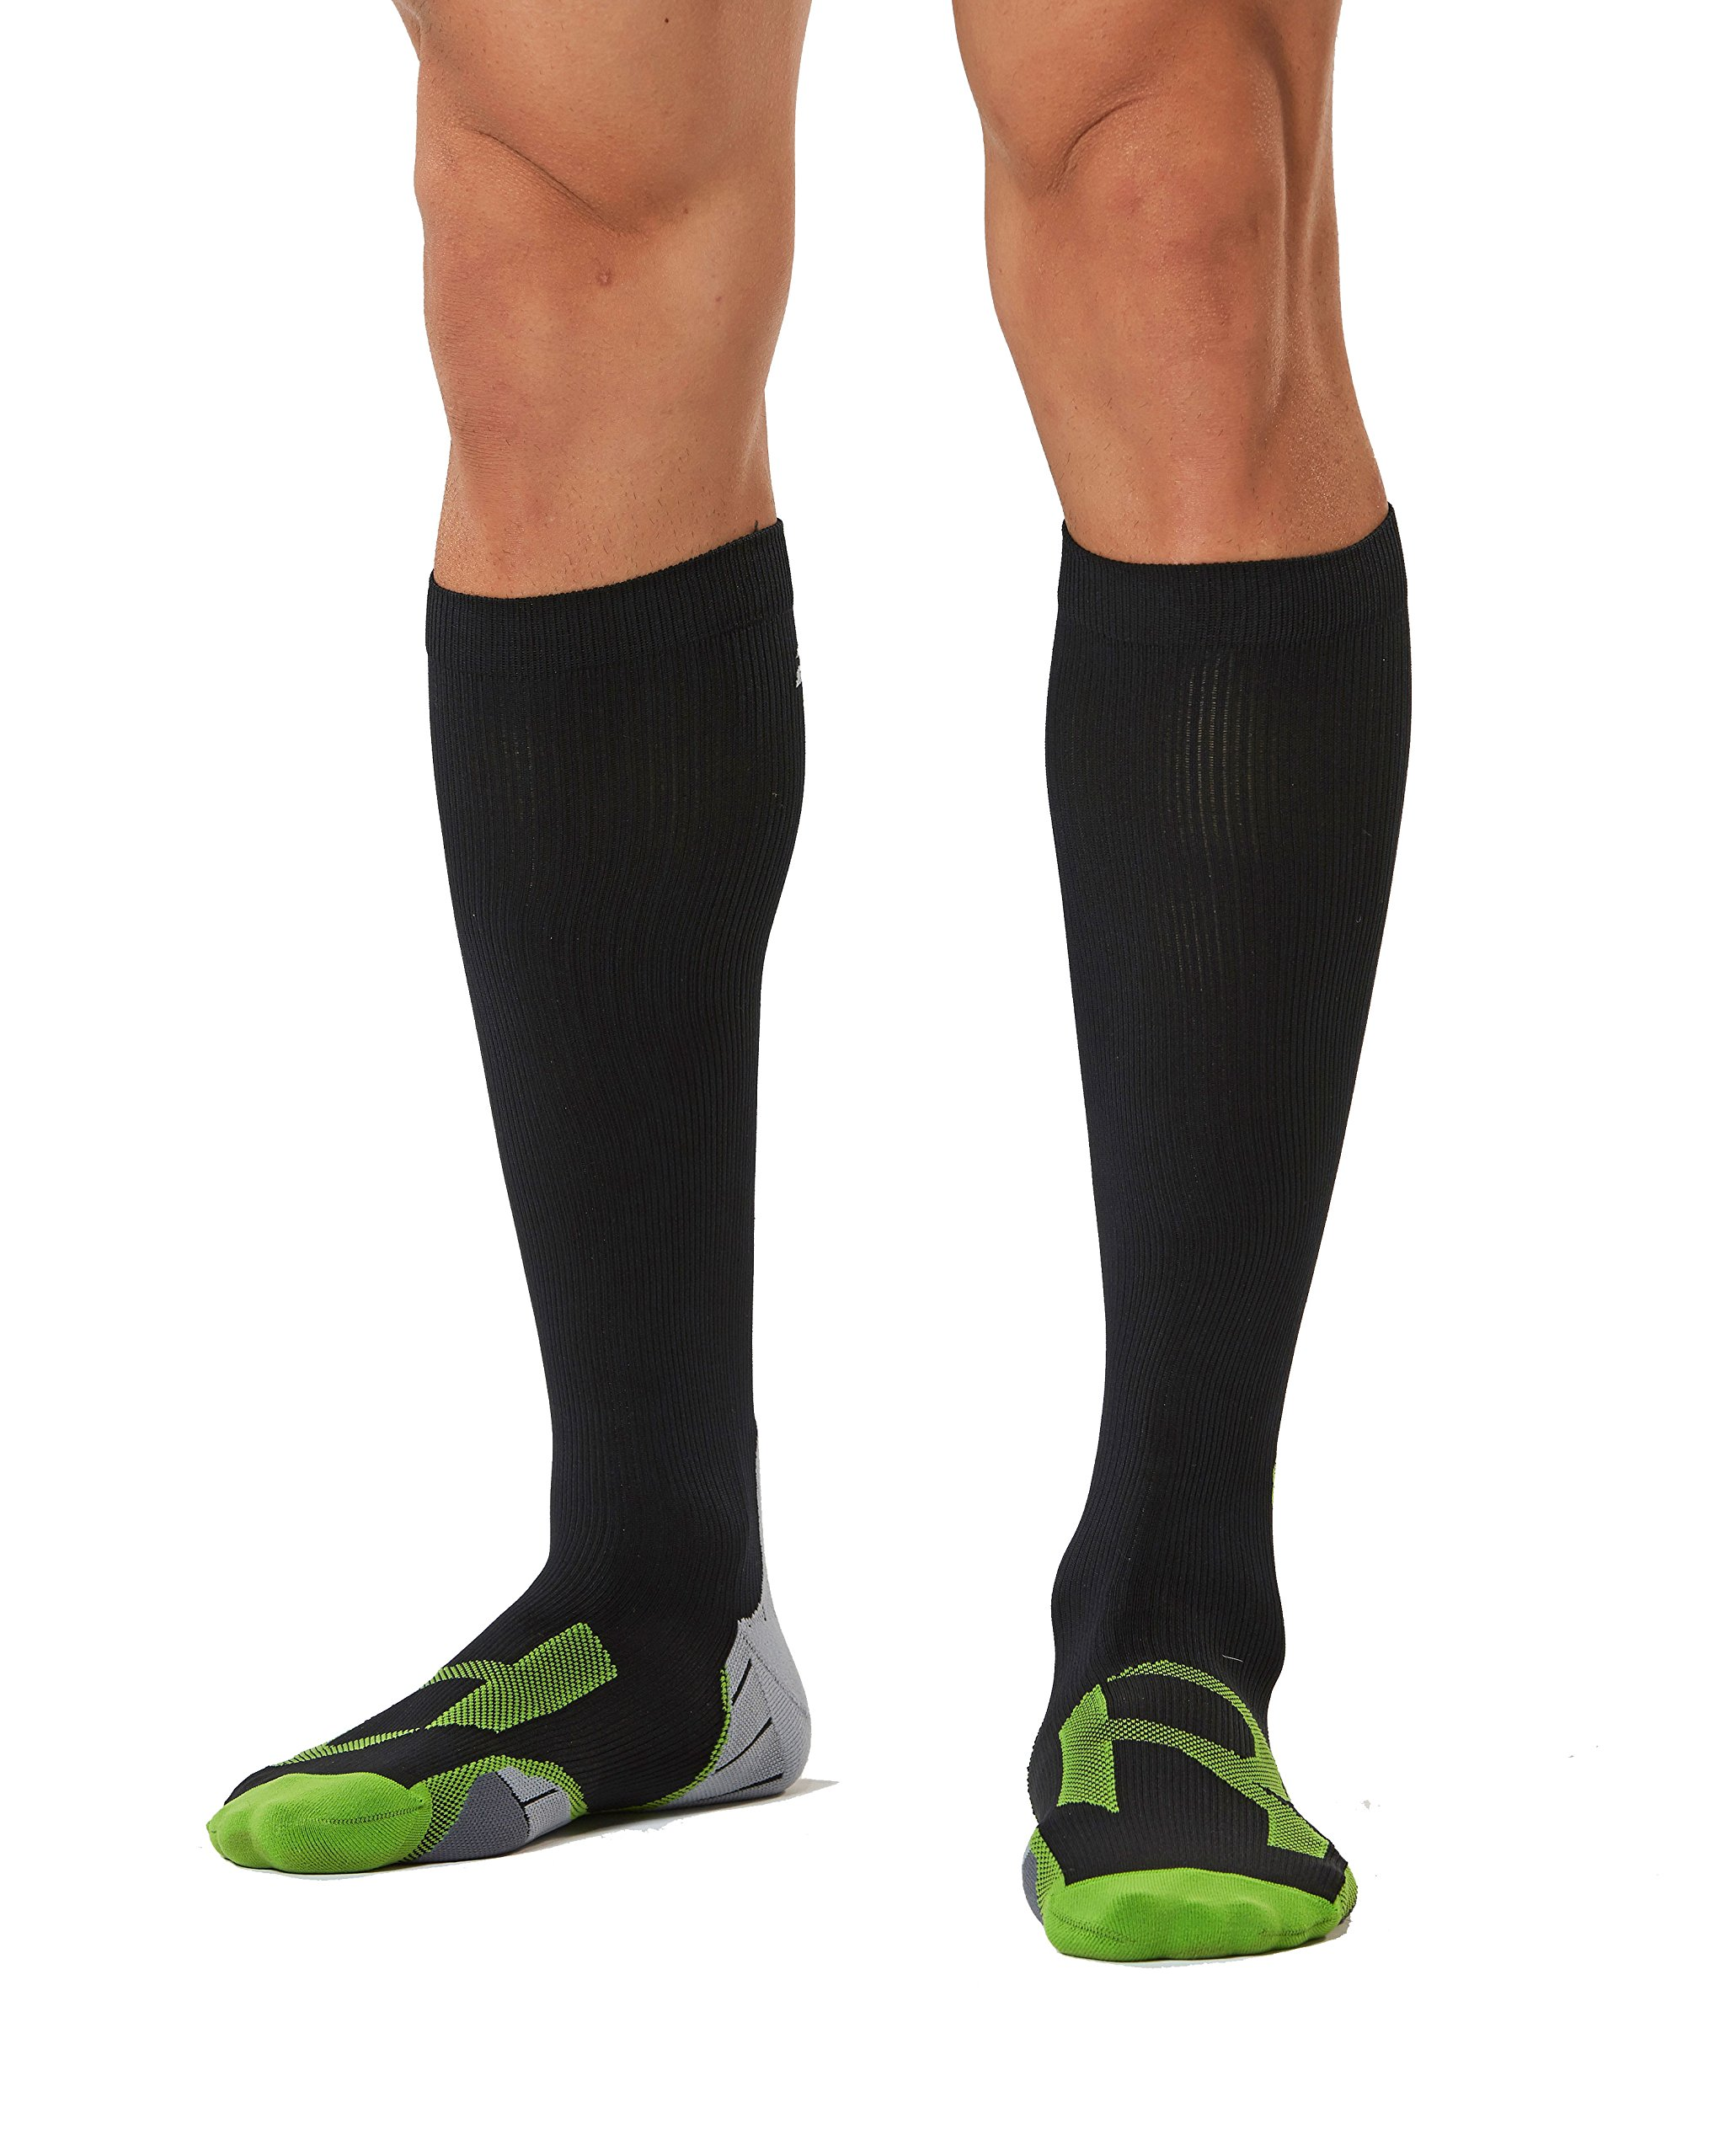 2XU Men's Compression Socks For Recovery, Black/Grey, Large